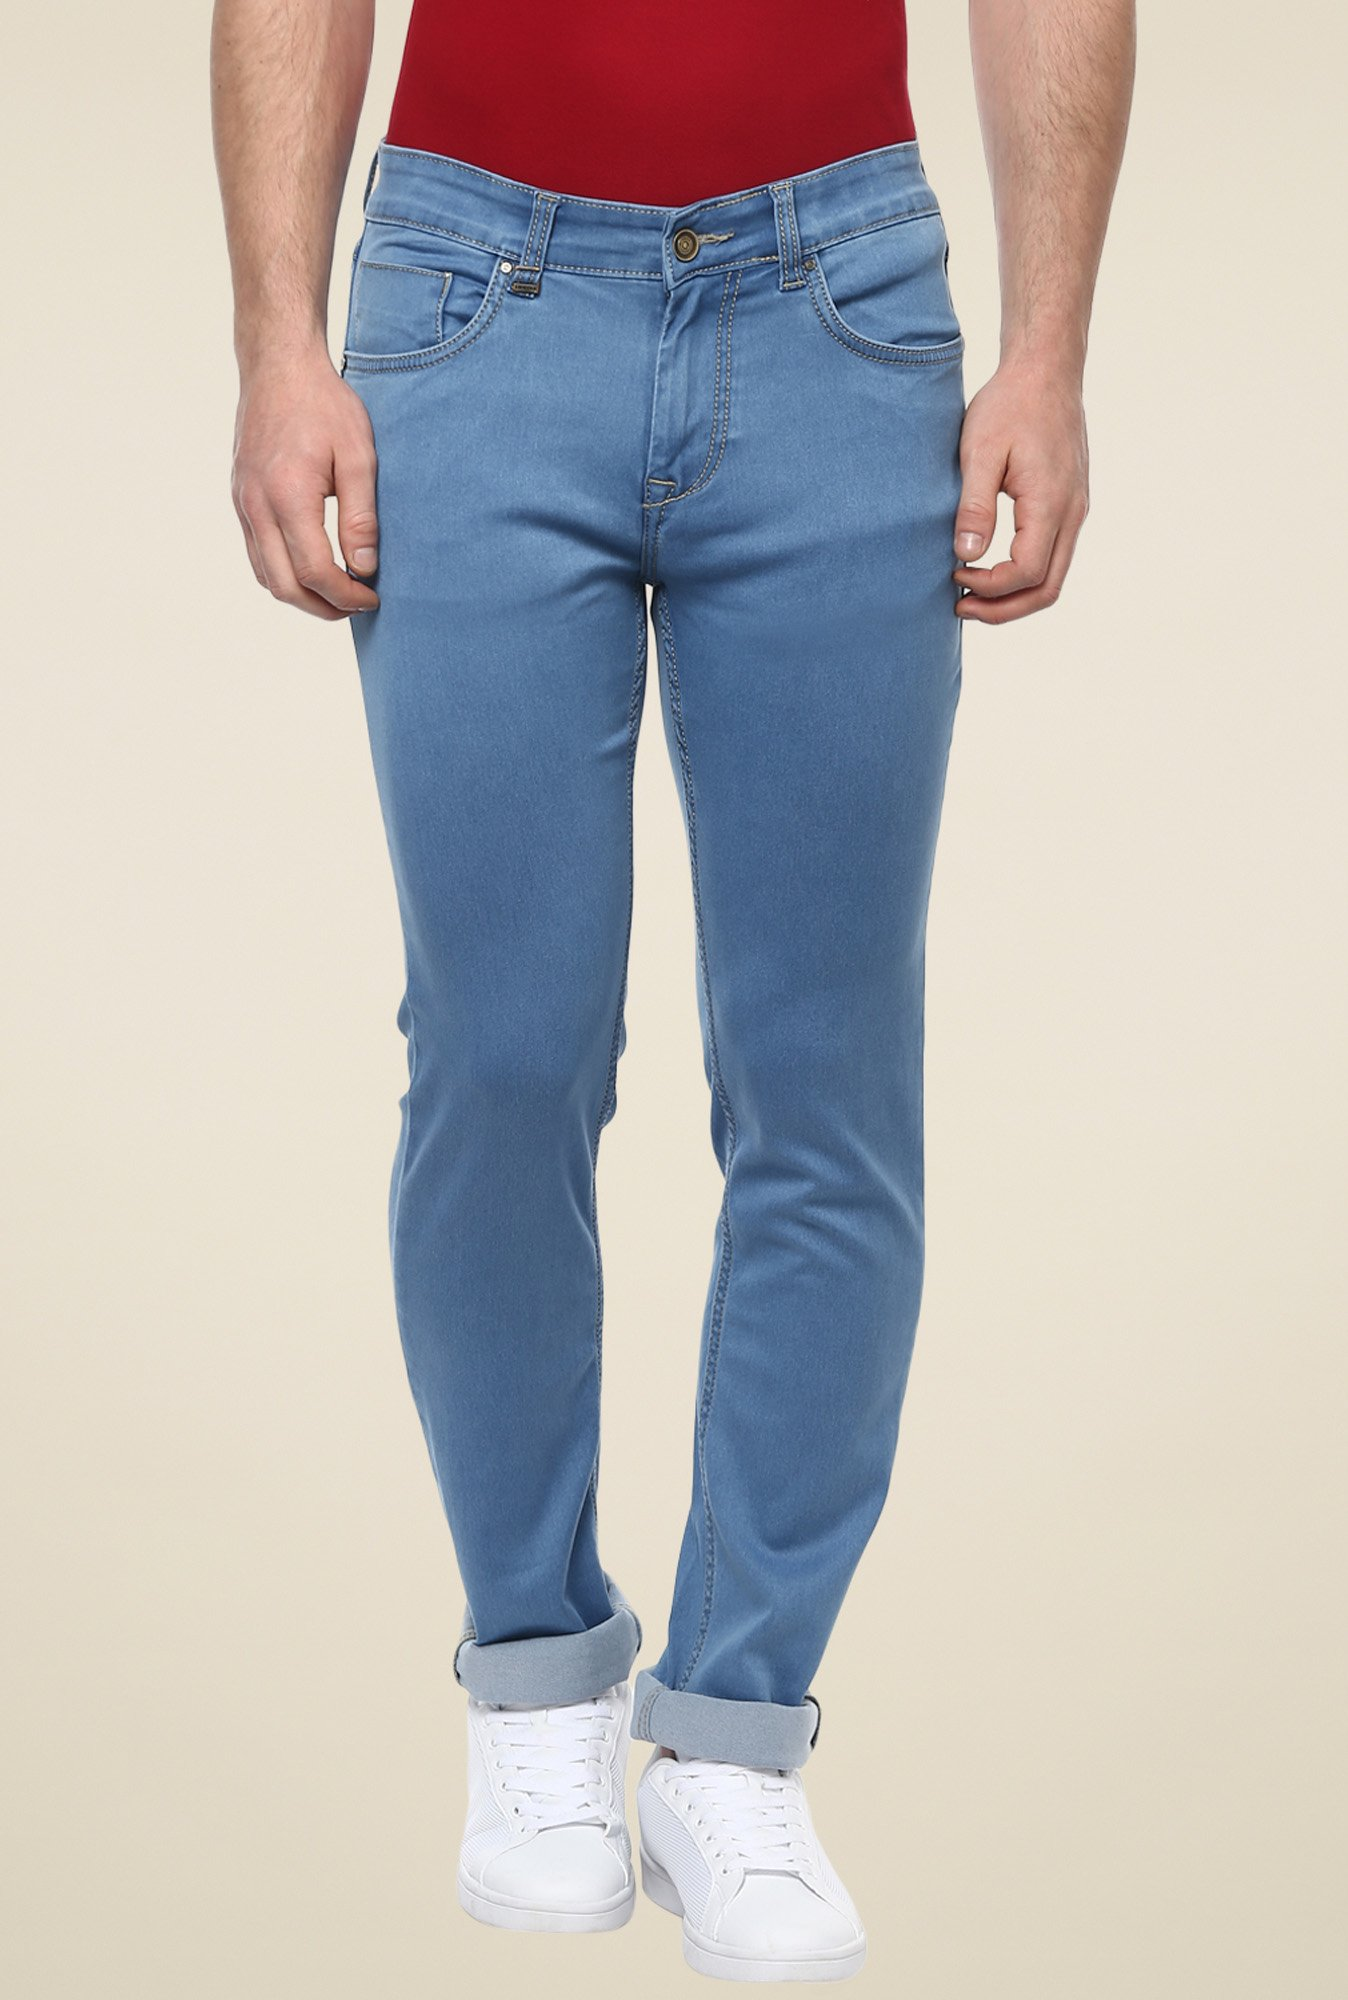 Turtle Blue Low Rise Slim Fit Jeans